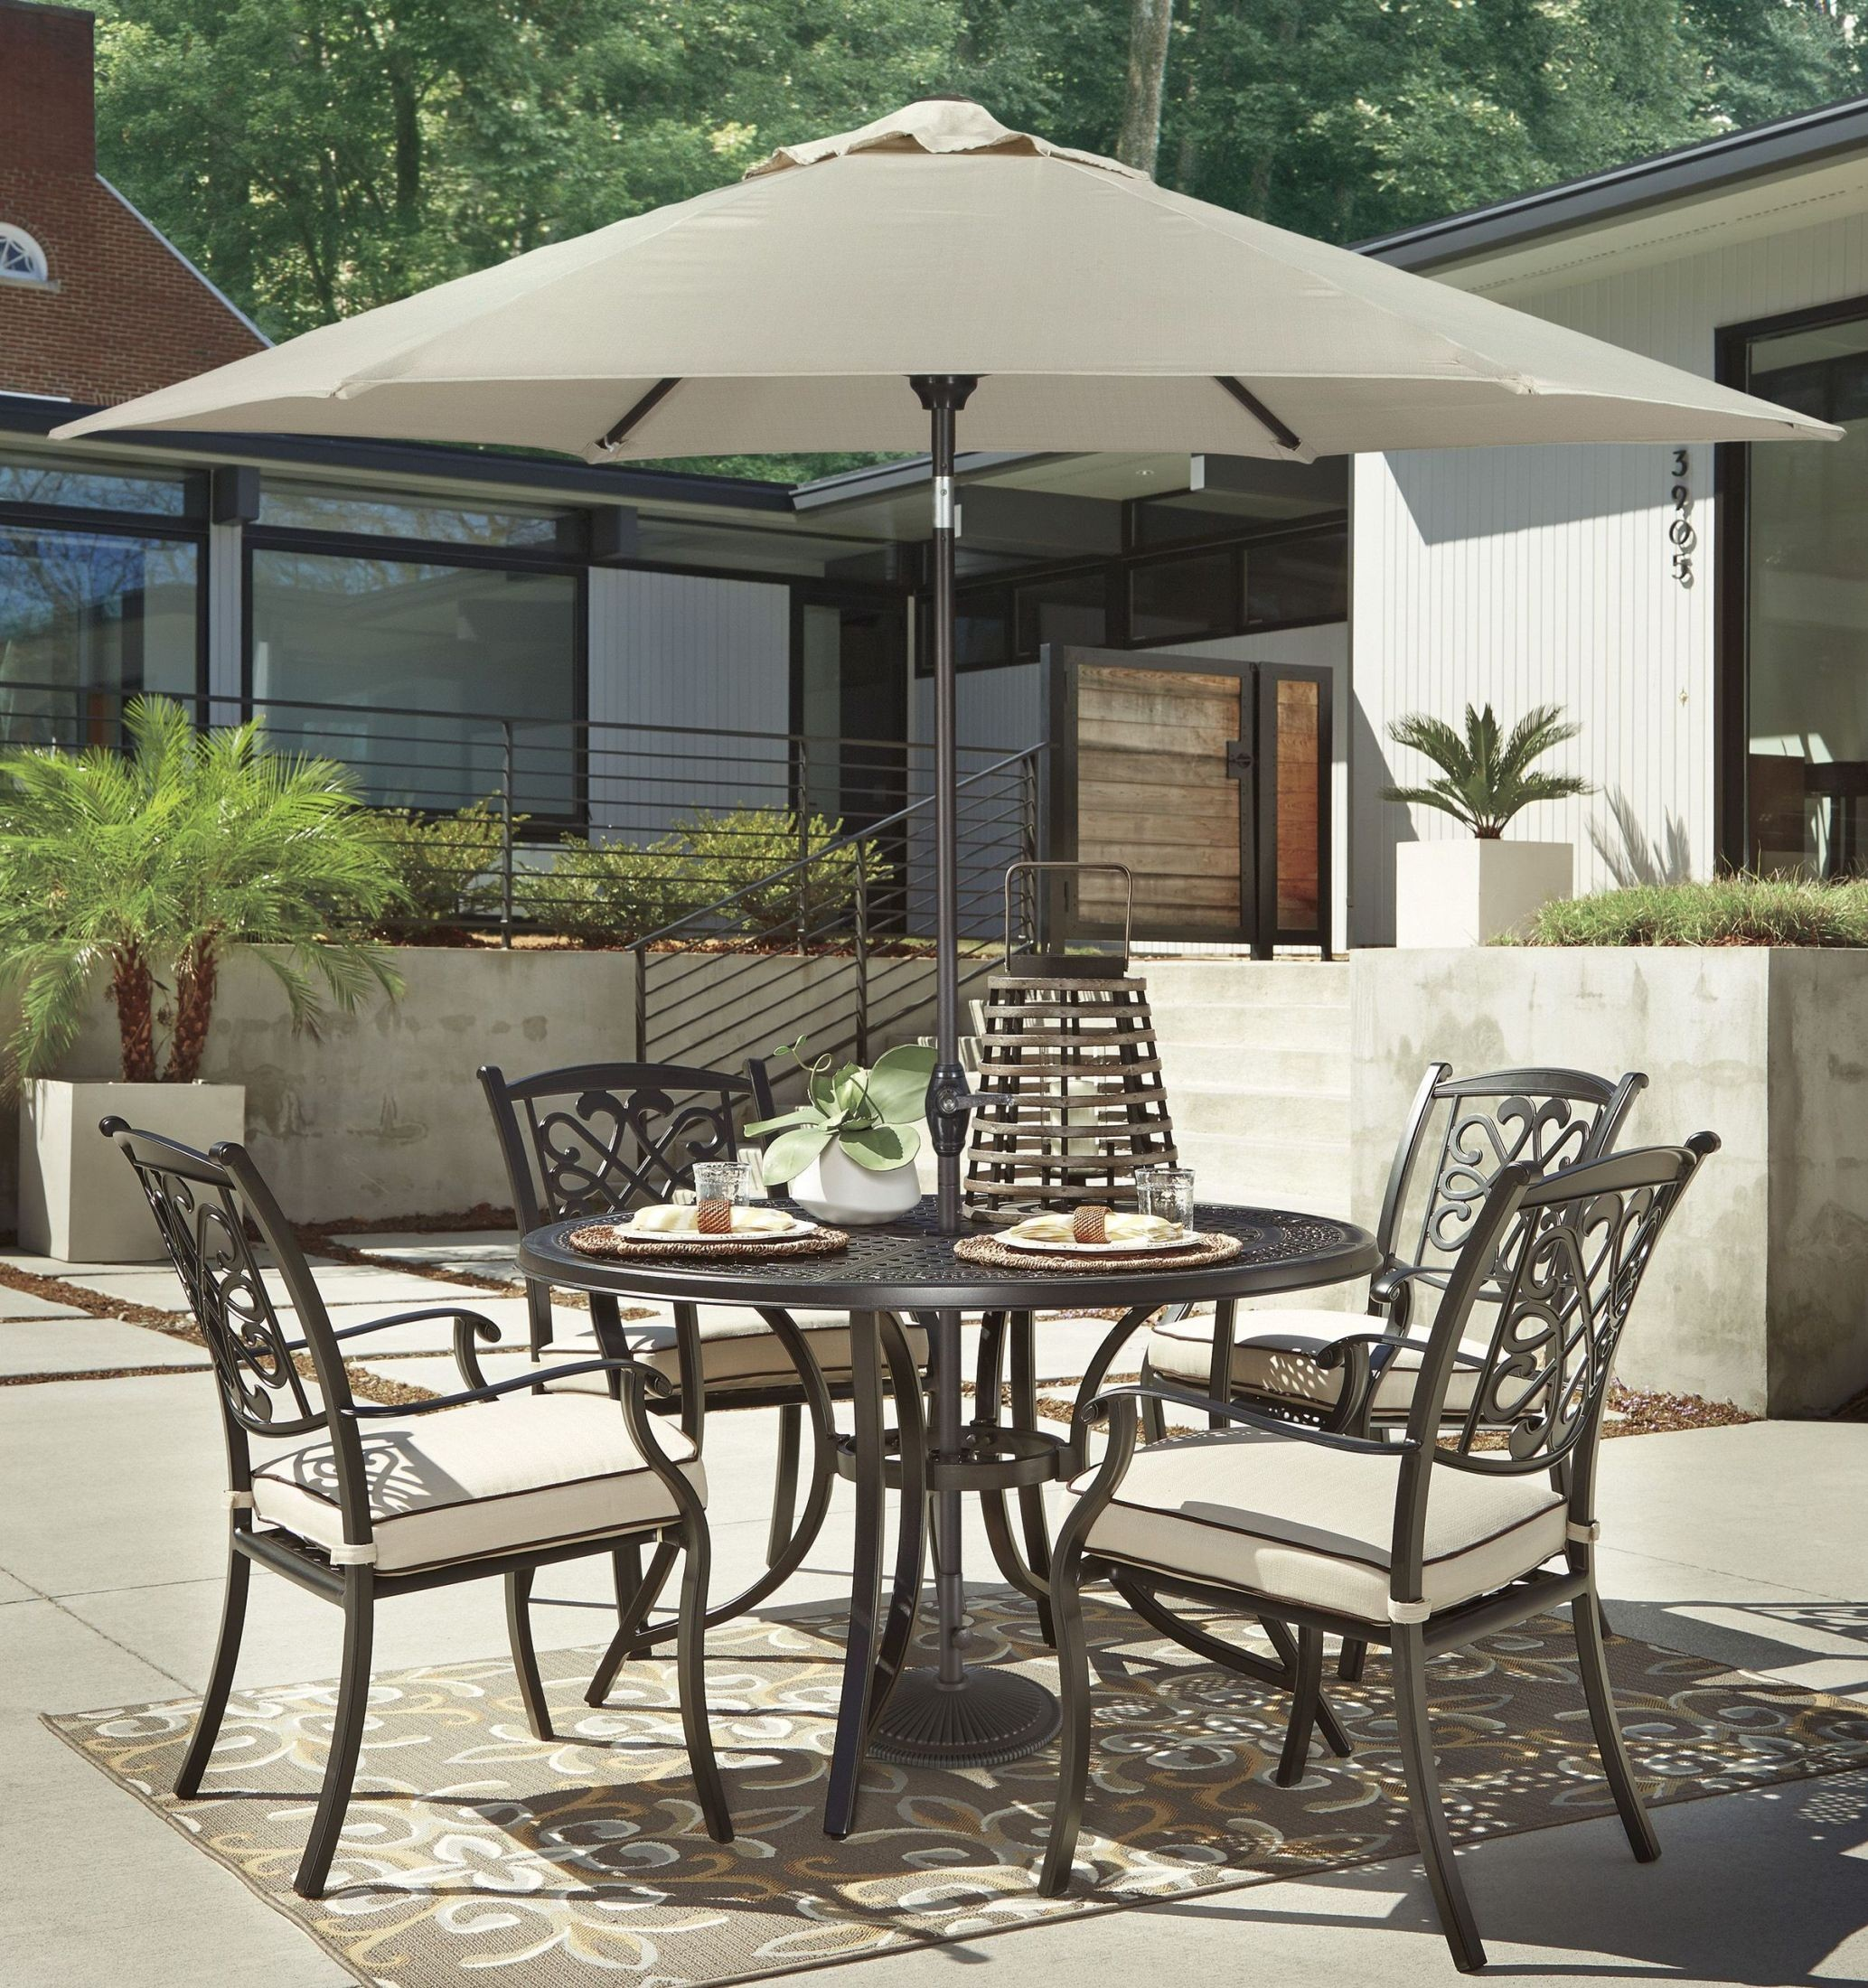 Burnella Beige and Brown Outdoor Round Dining Room Set from Ashley